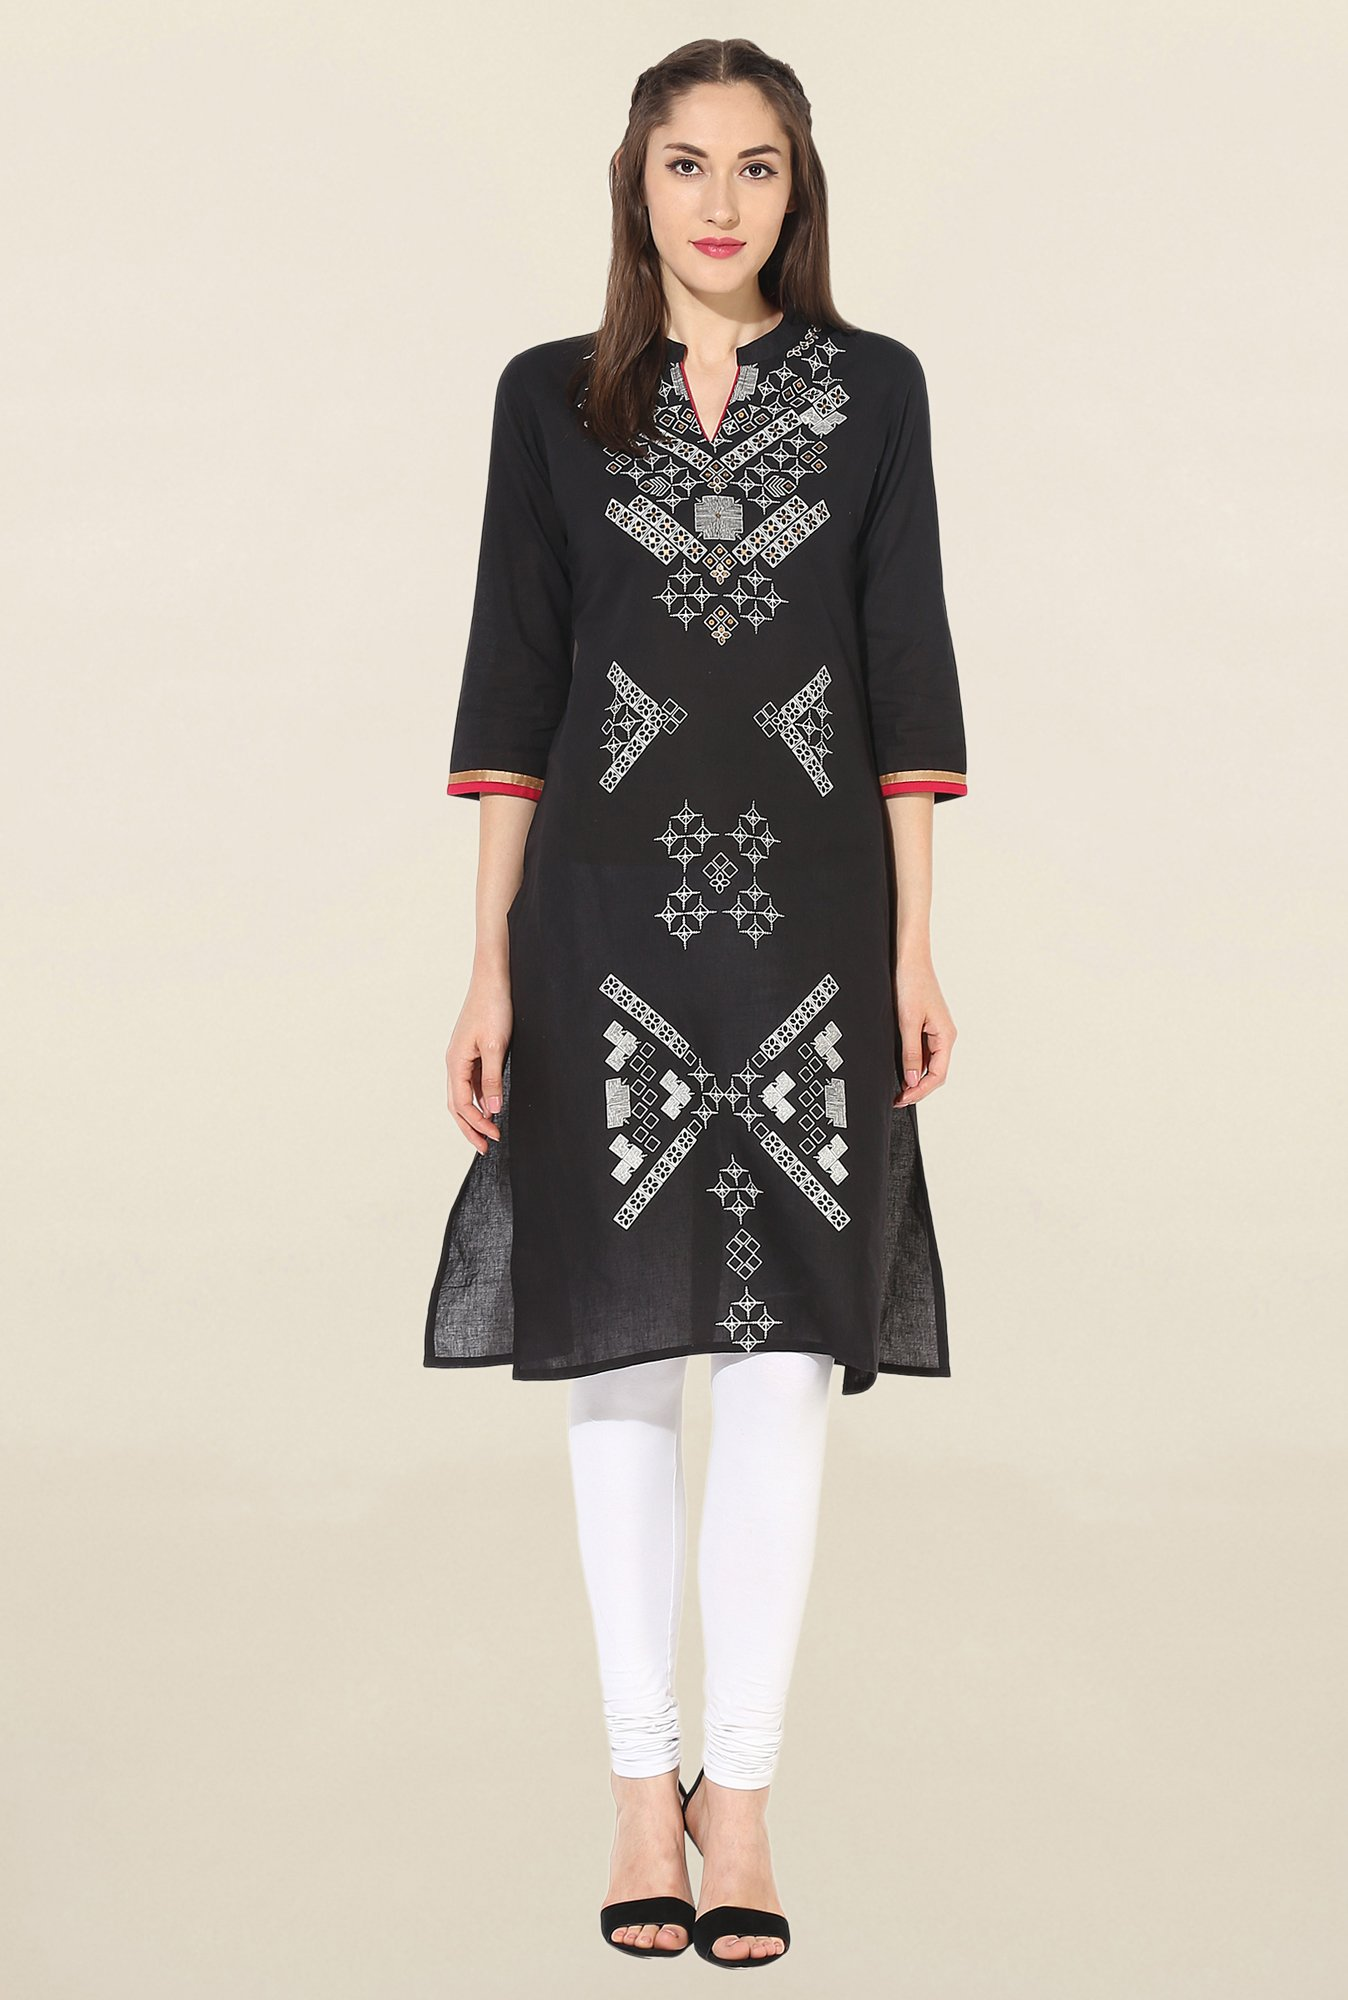 Mytri Black Printed South Cotton Kurta